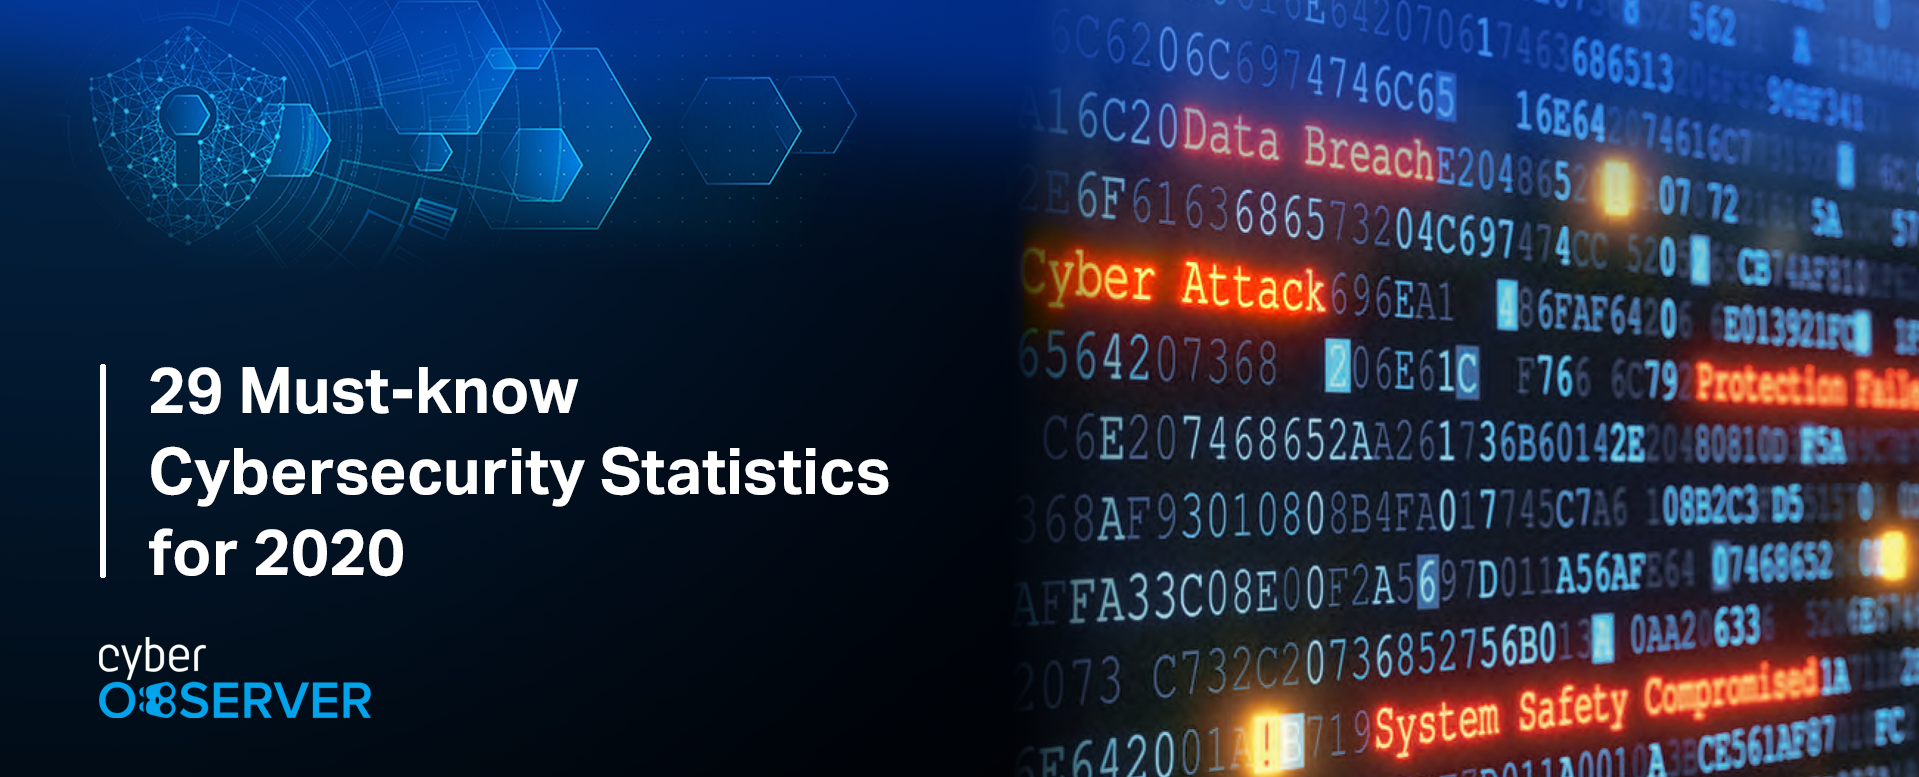 29 Must-know Cybersecurity Statistics for 2020